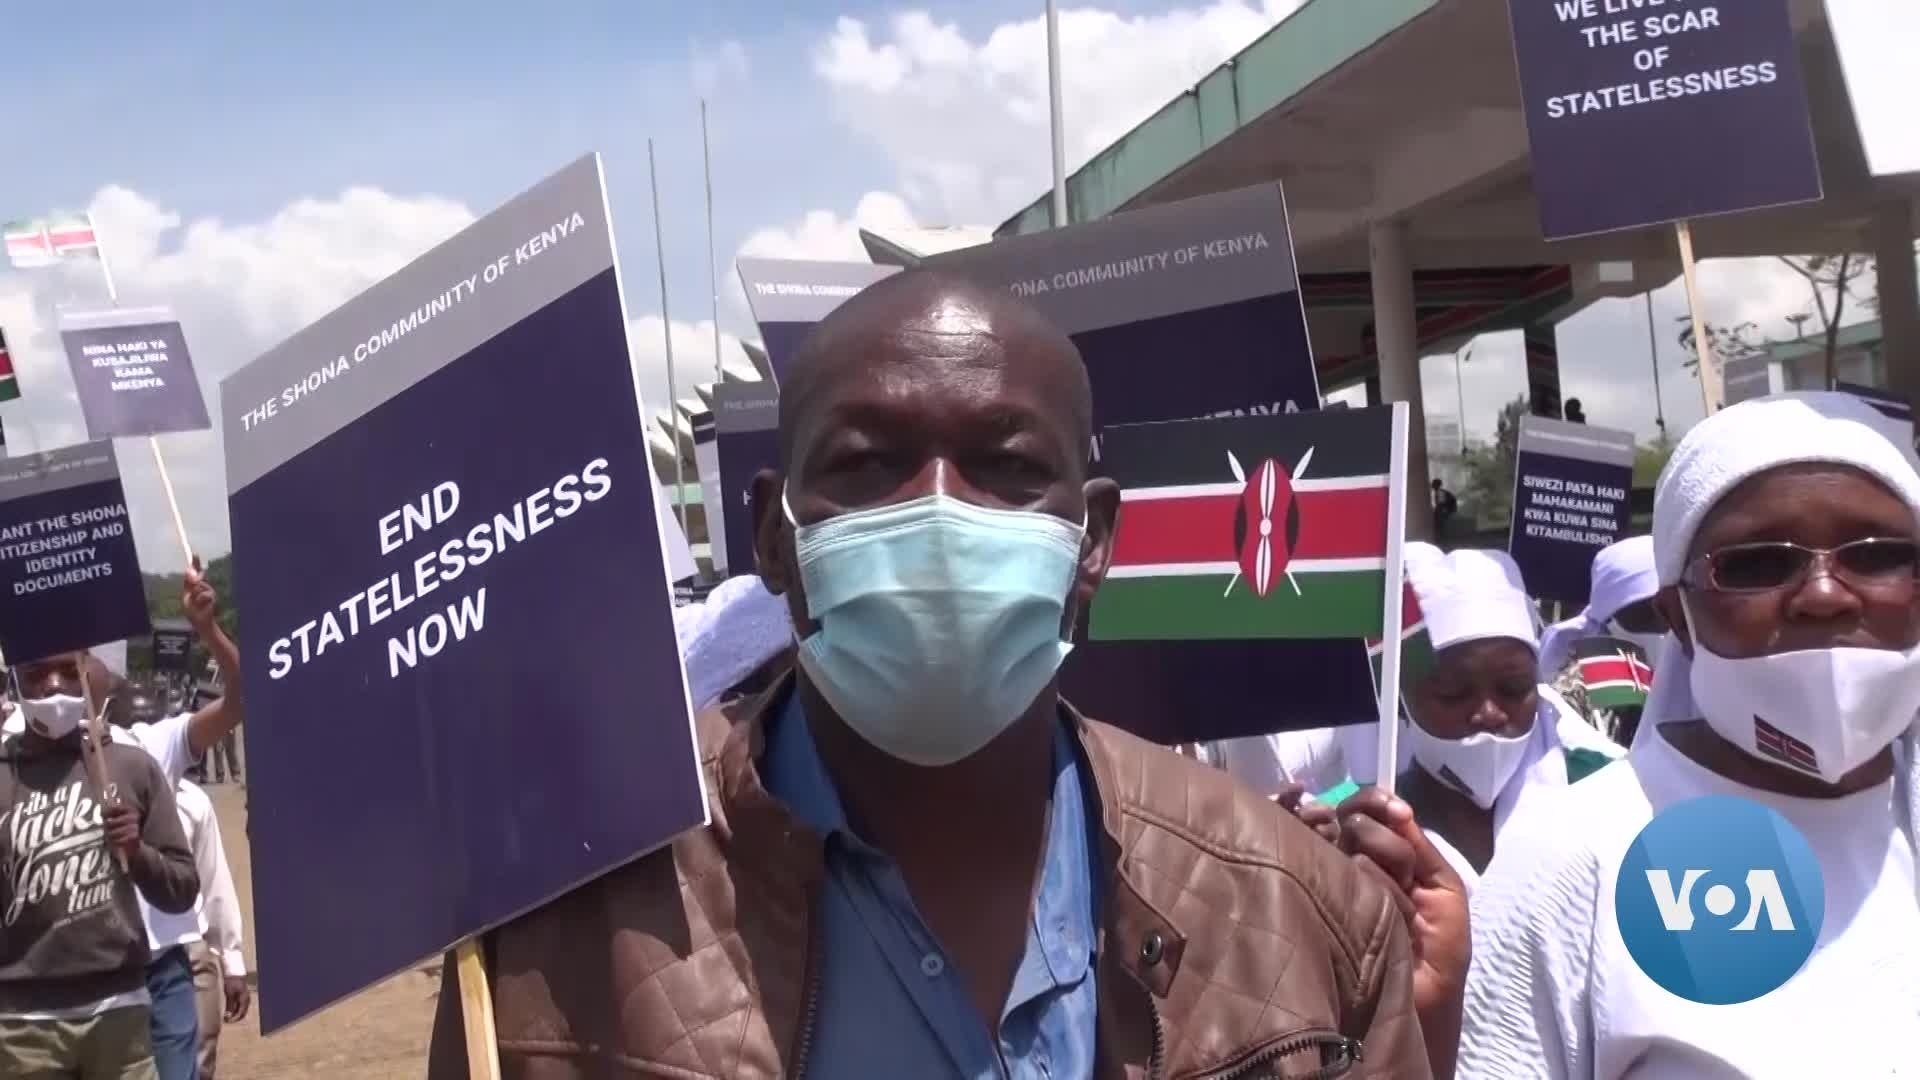 Kenya's Shona Community Fights for State Recognition